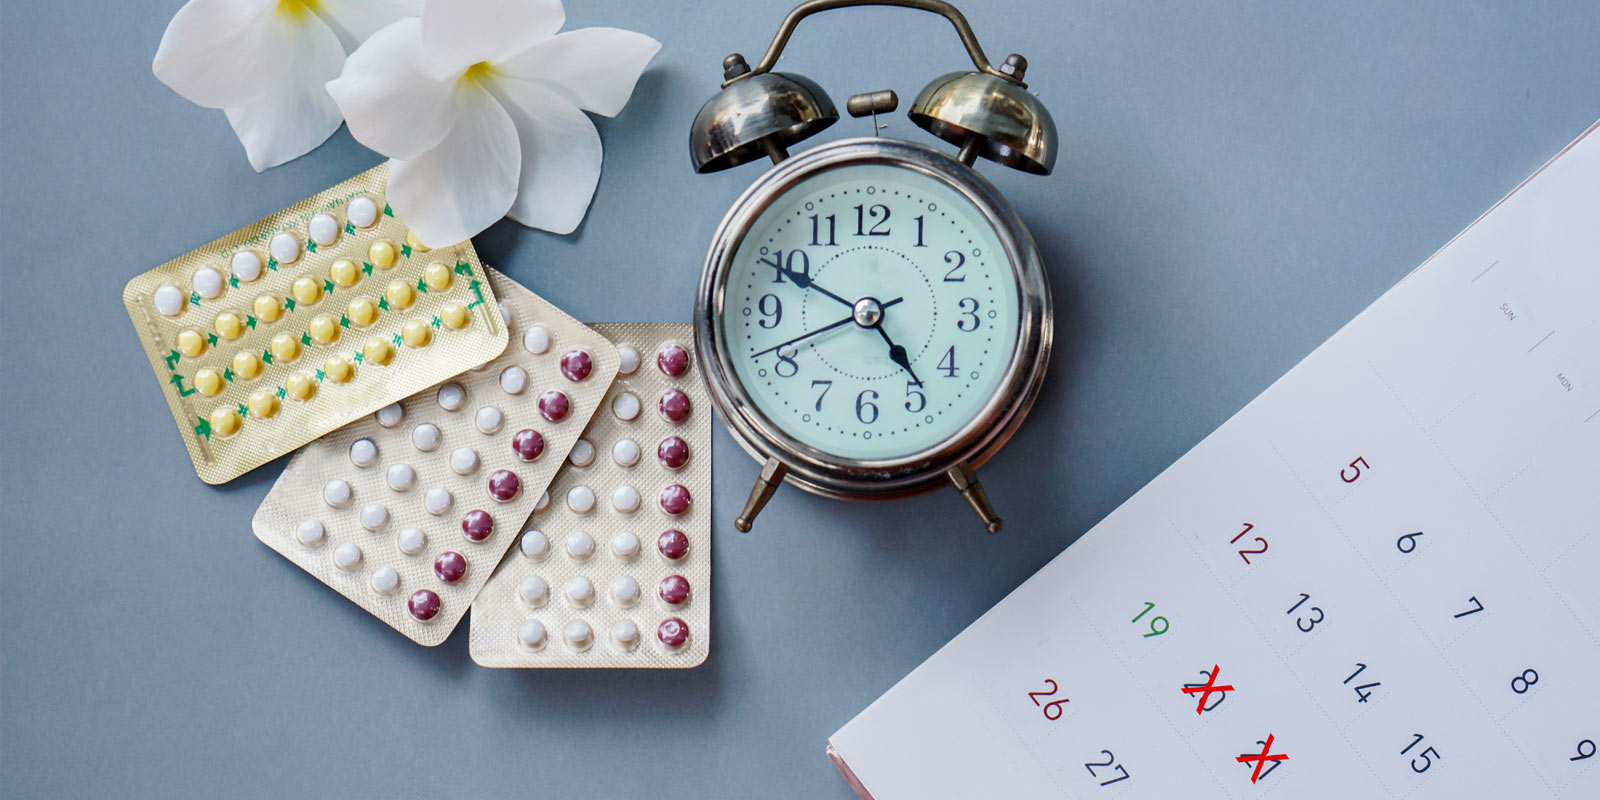 hormonal contraceptive pills next to a clock and calendar